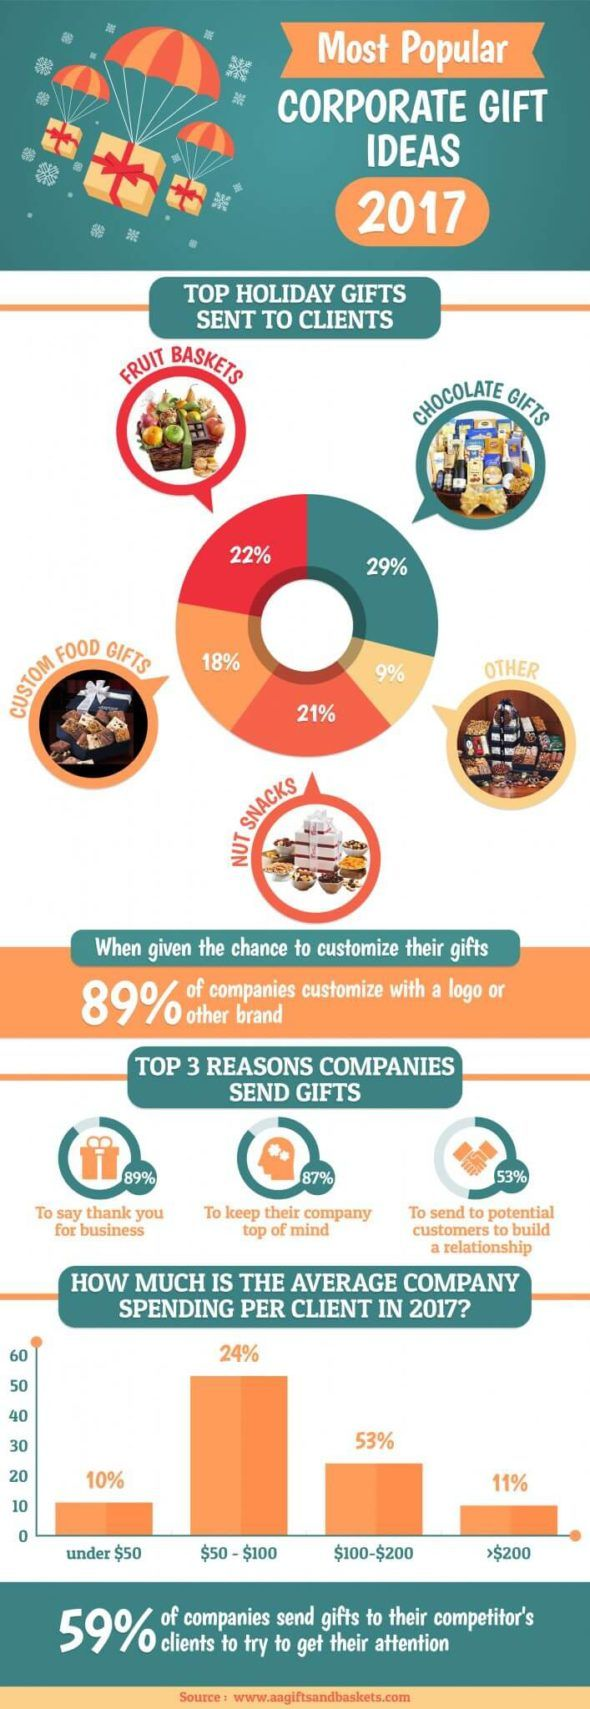 The Ultimate Corporate Gift Ideas Guide - 2017 Edition #christmasgifts #business